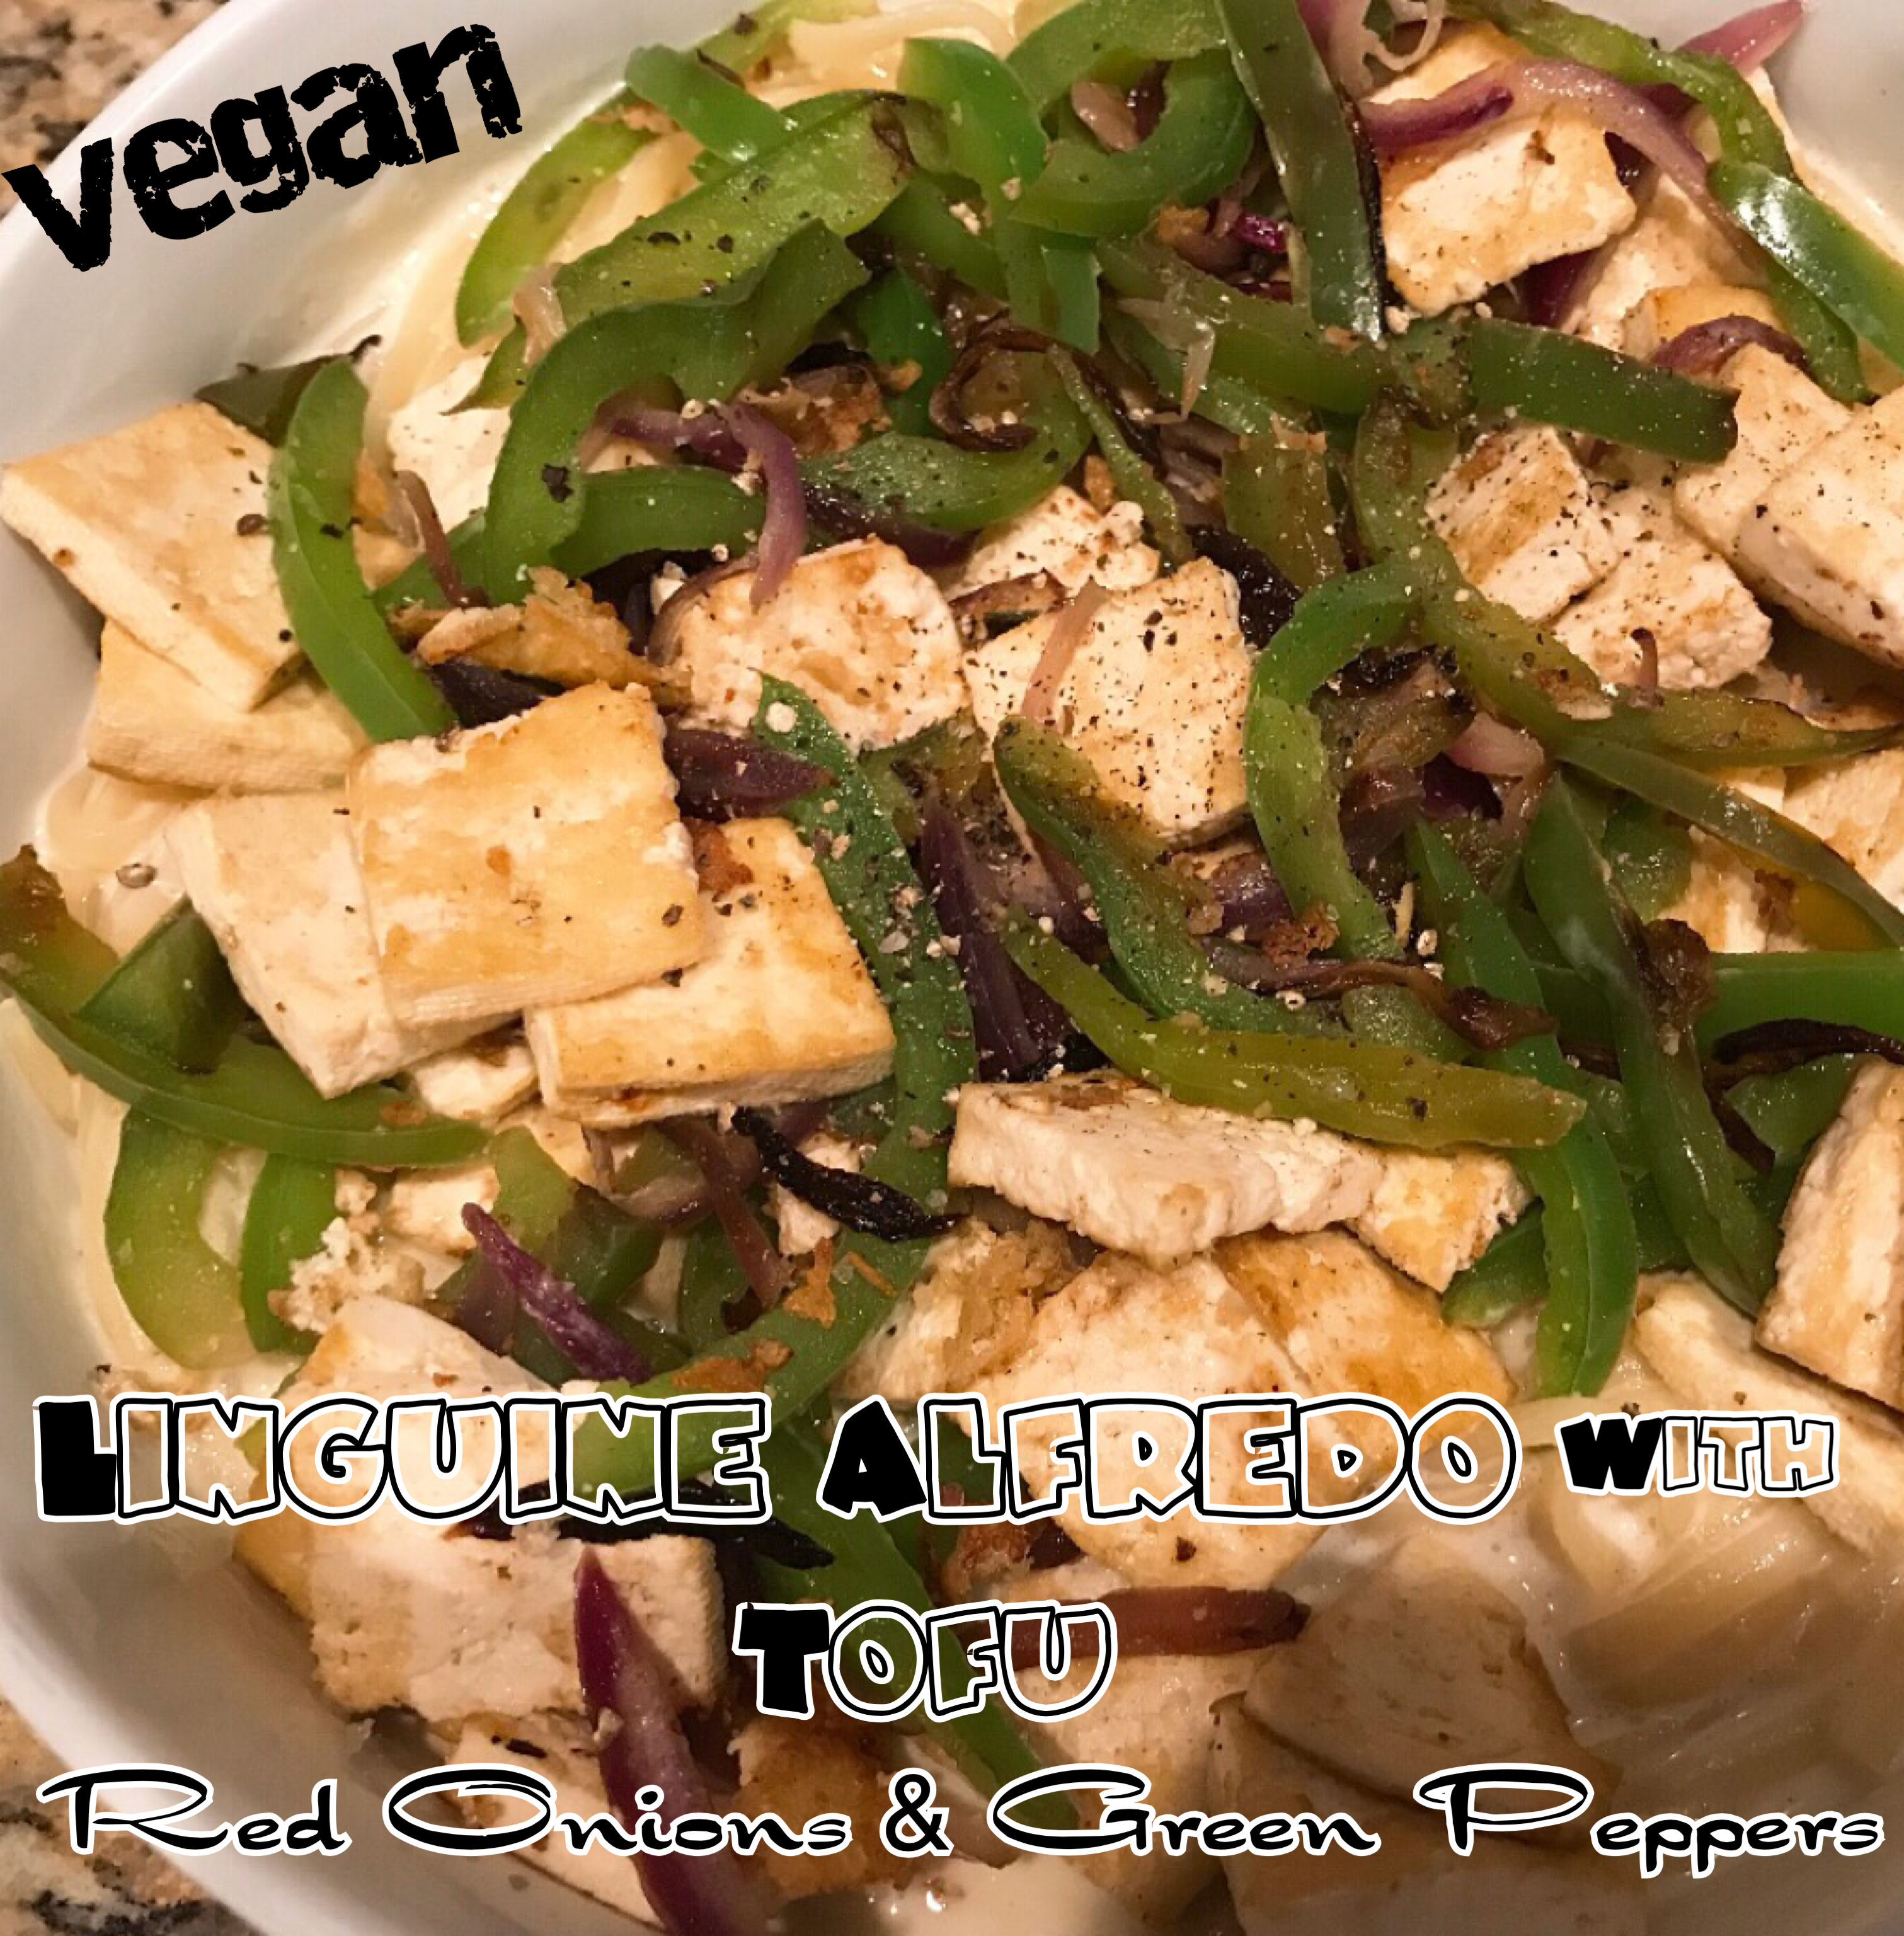 Vegan Linguine Alfredo with Tofu Red Onions & Green Peppers